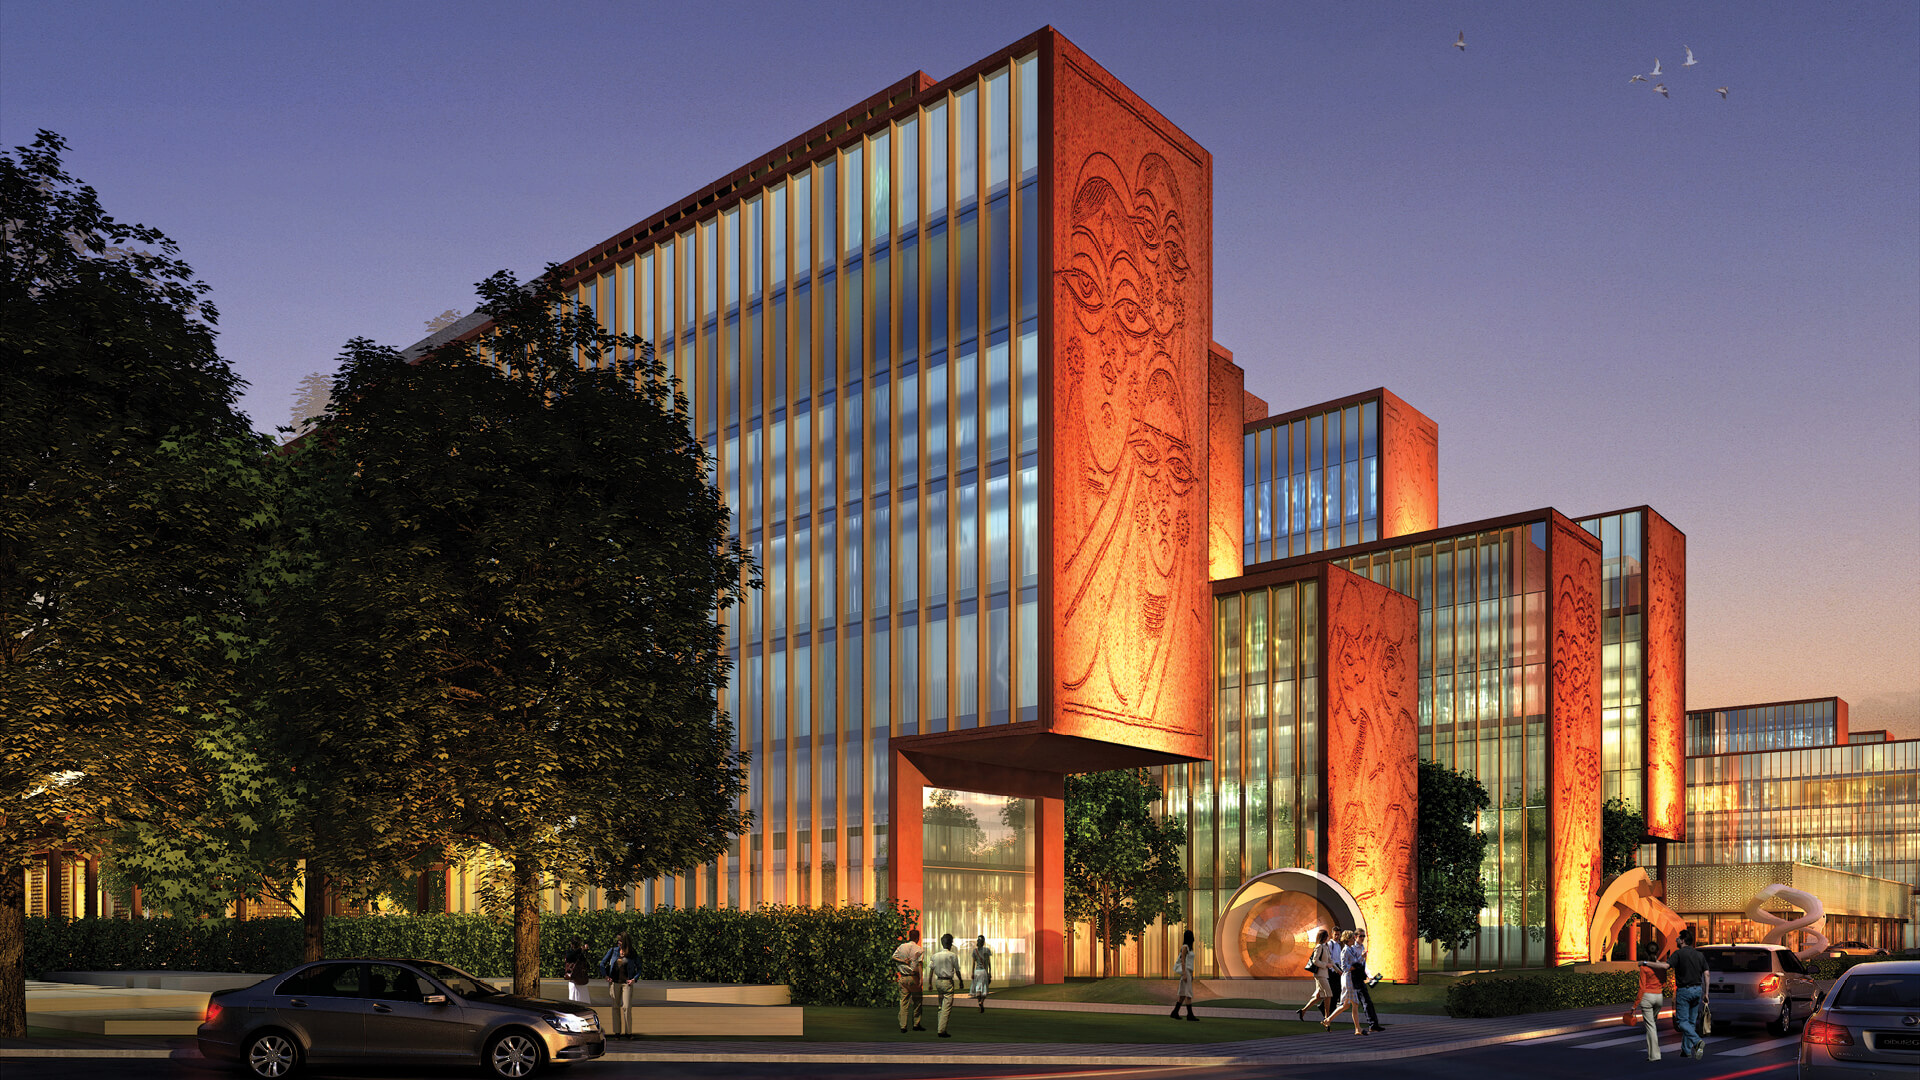 ITC Campus in Kolkata, India, revives traditional Bengali art and culture | ITC Campus by Morphogenesis | STIRworld